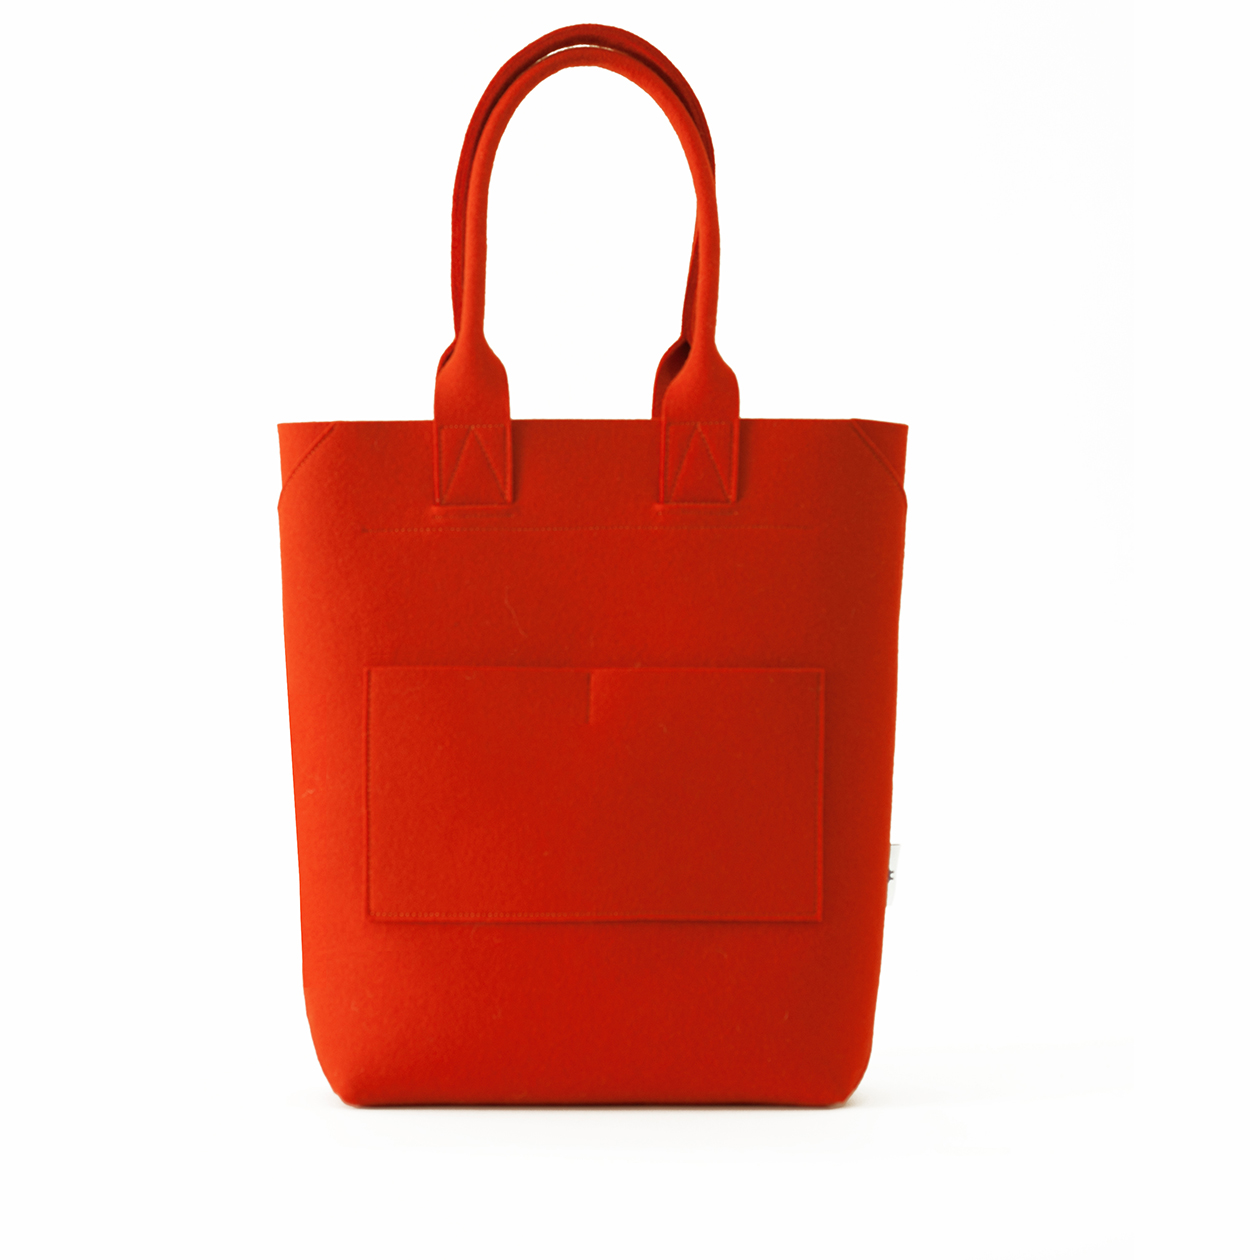 web-Tote-bag-Felt-Feltum-orange-Mexico-Design-Time.jpg